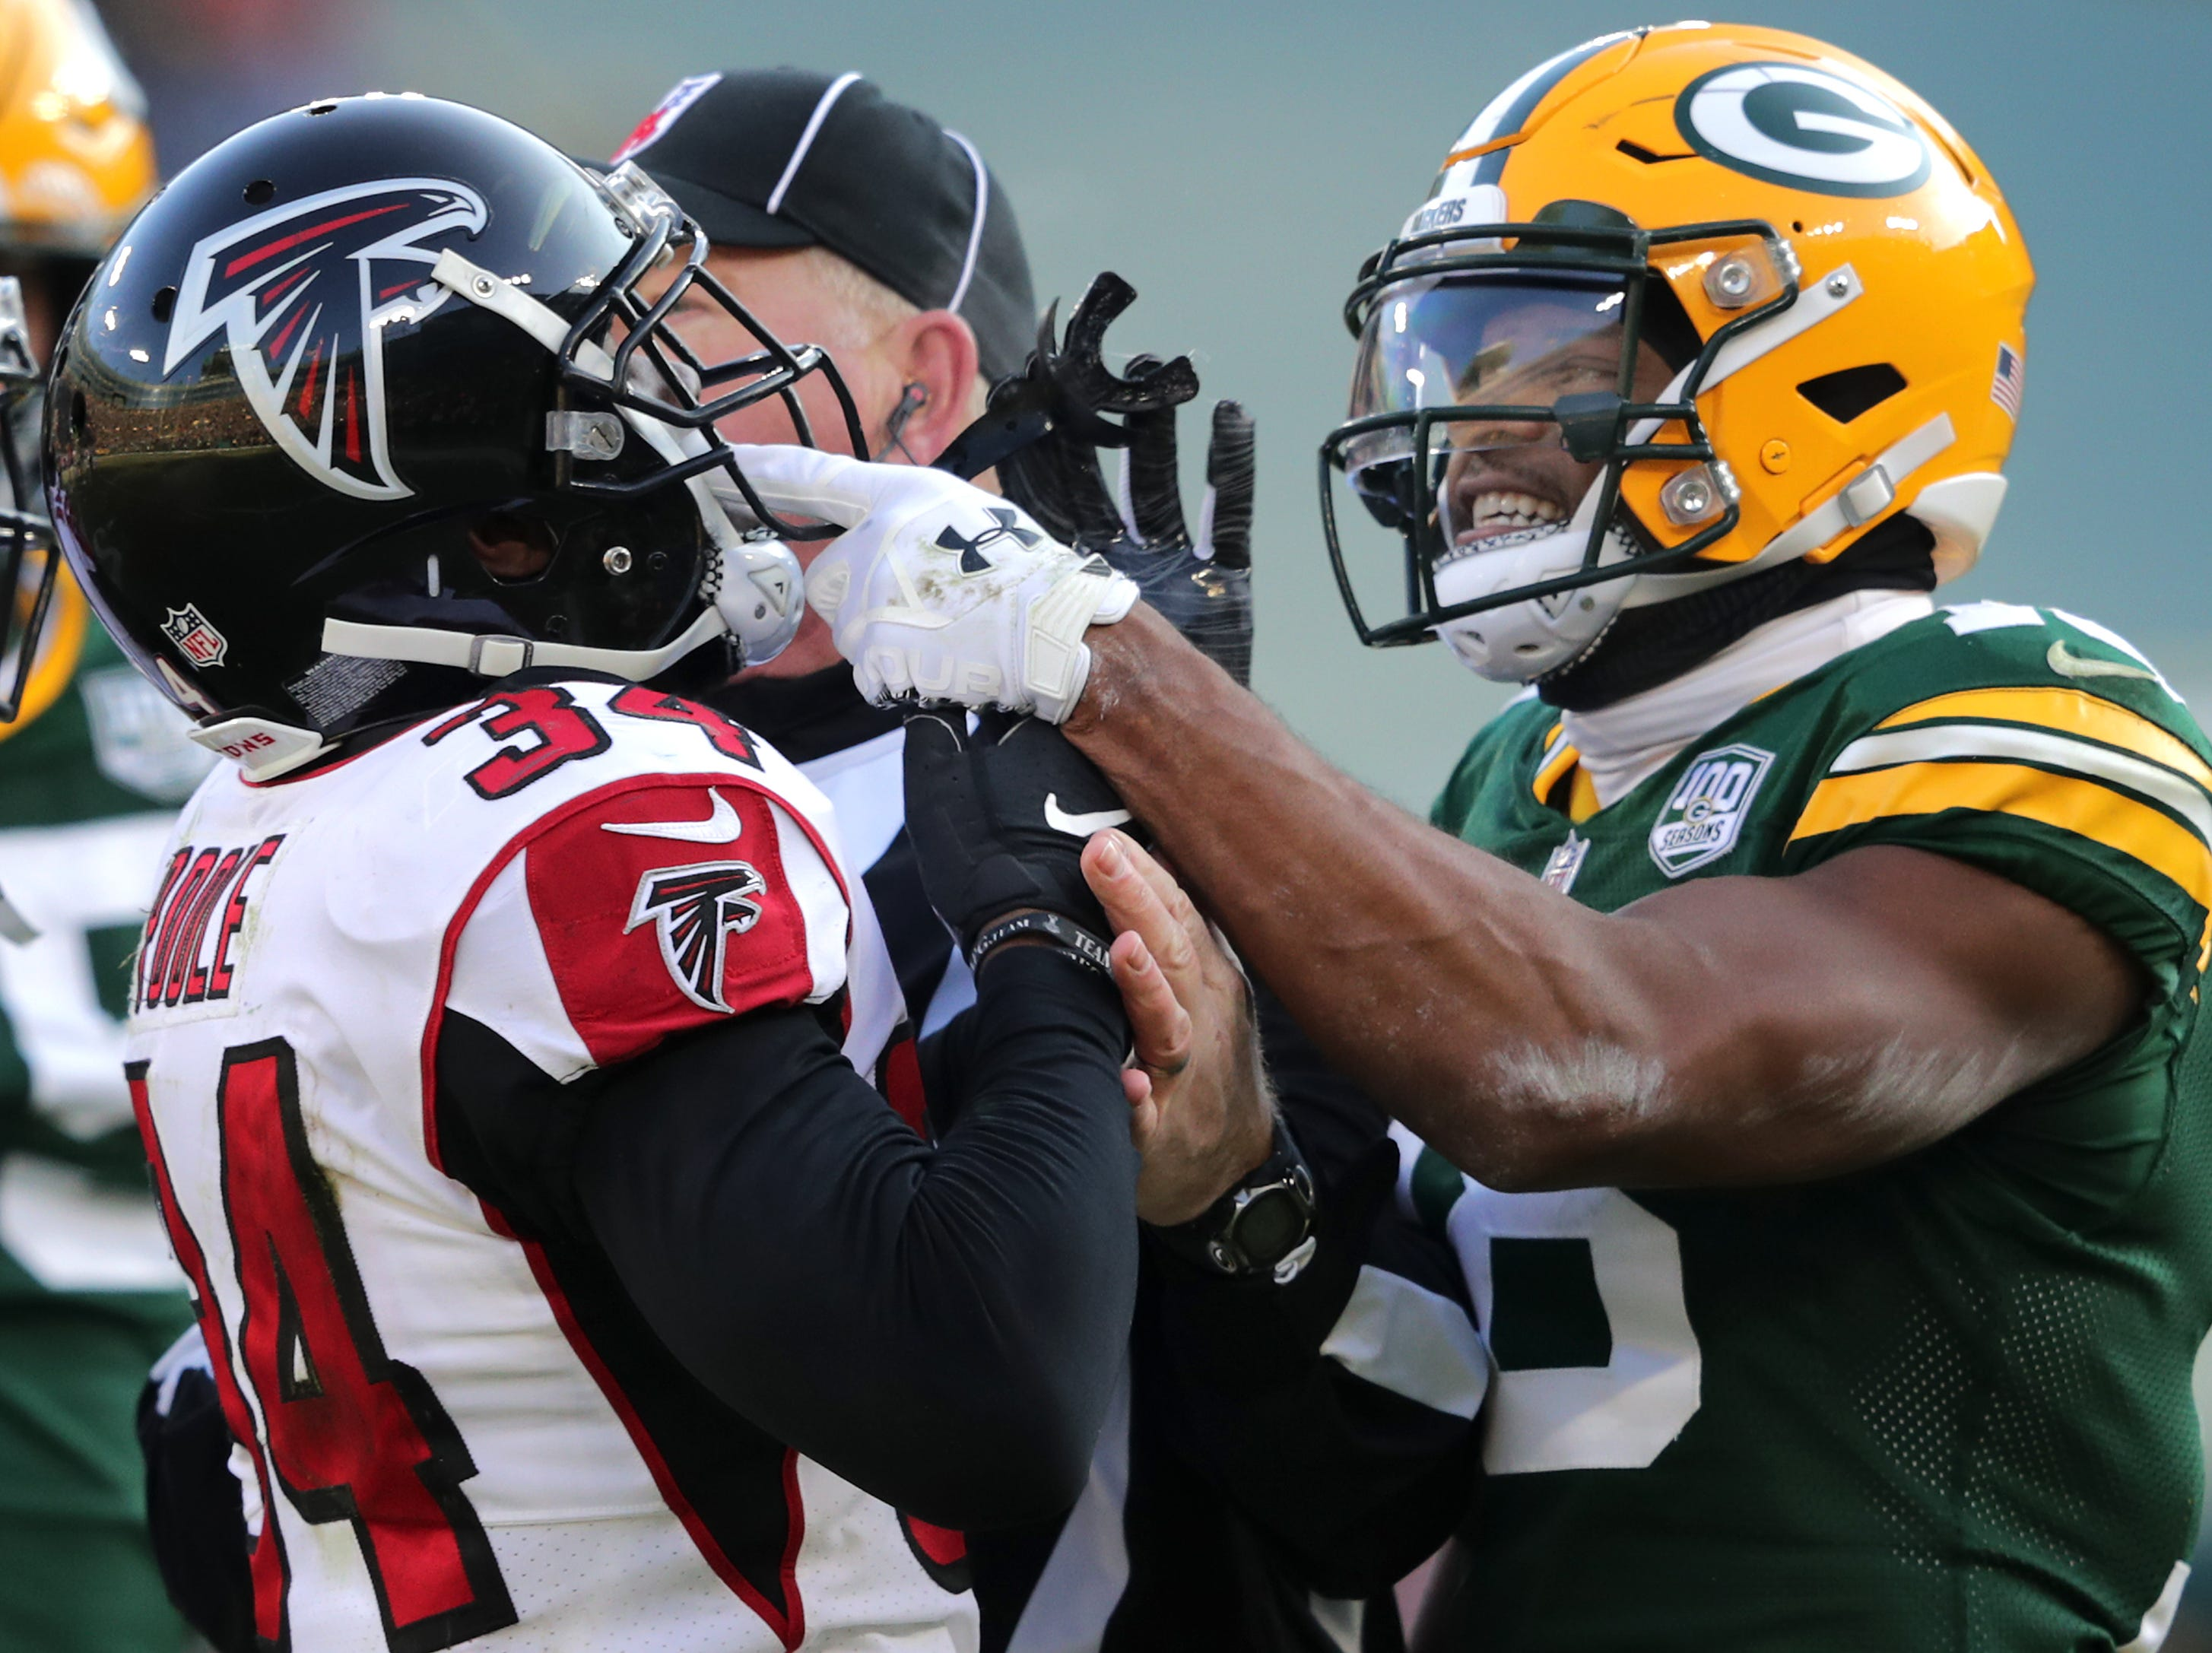 A scuffle between Green Bay Packers wide receiver Randall Cobb and Atlanta Falcons cornerback Brian Poole following Poole's tackle of Green Bay Packers quarterback Aaron Rodgers in the second quarter of the Green Bay Packers against the Atlanta Falcons during their football game on Sunday, December 9, 2018, at Lambeau Field in Green Bay, Wis.